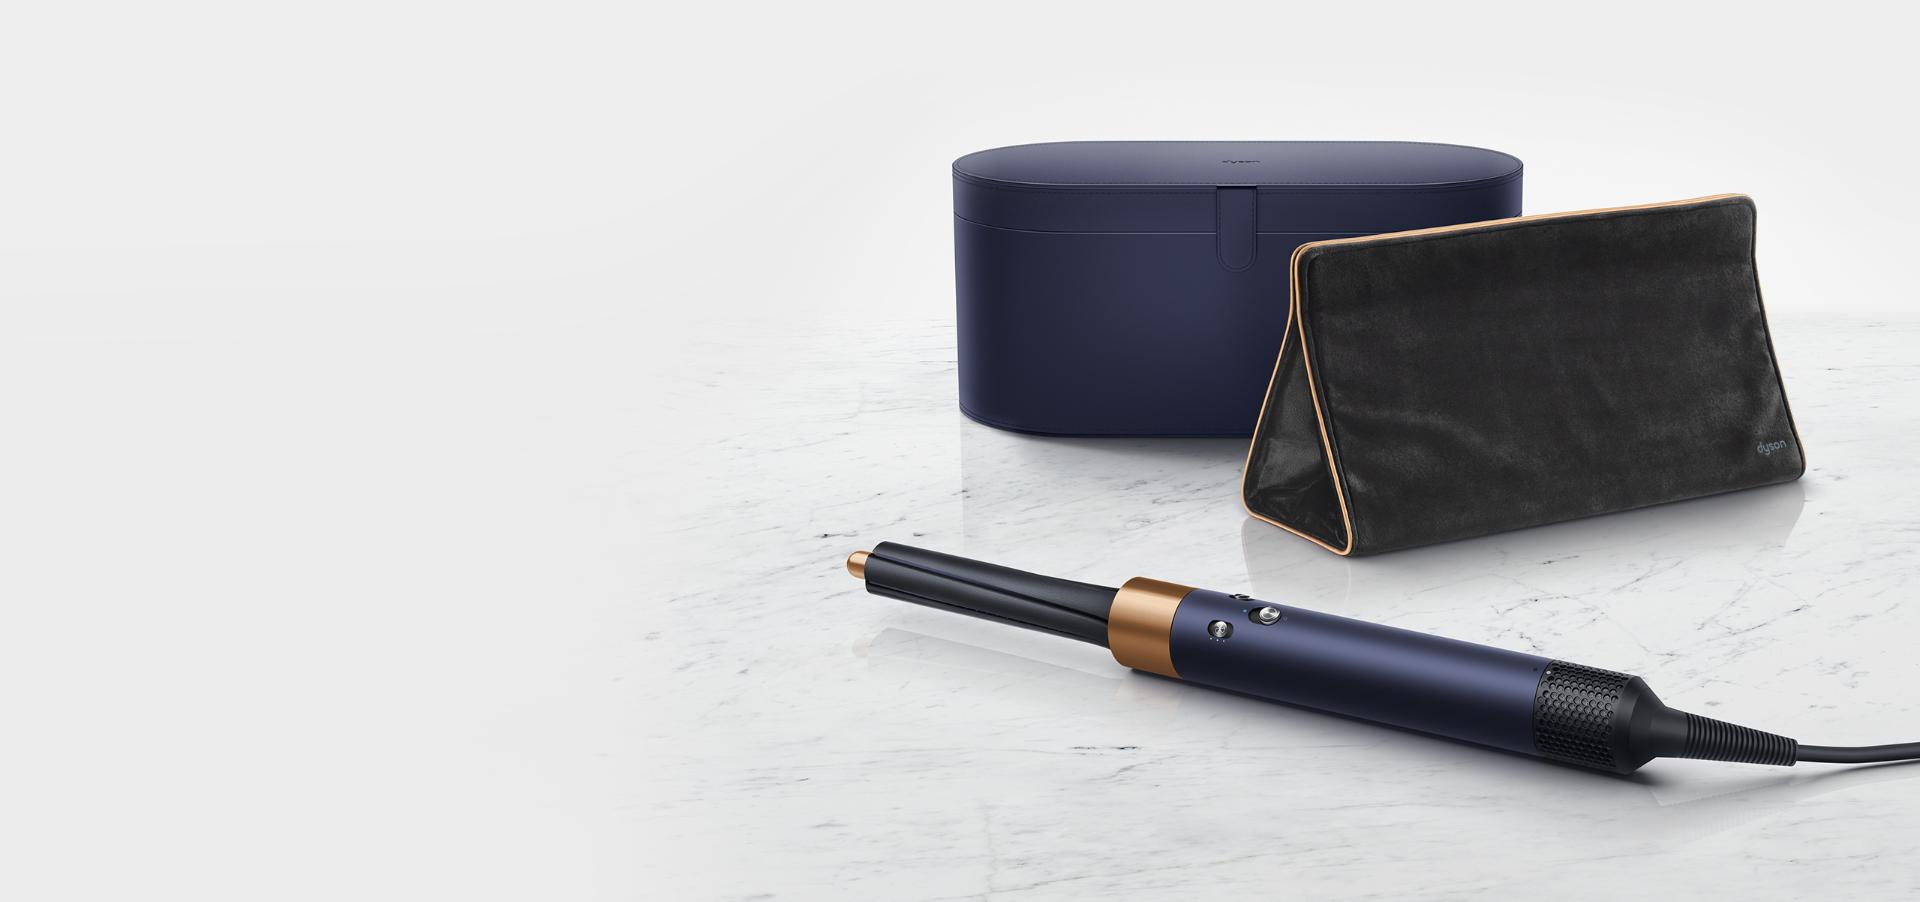 Special edition Dyson Airwrap styler Complete Long with presentation case and travel pouch